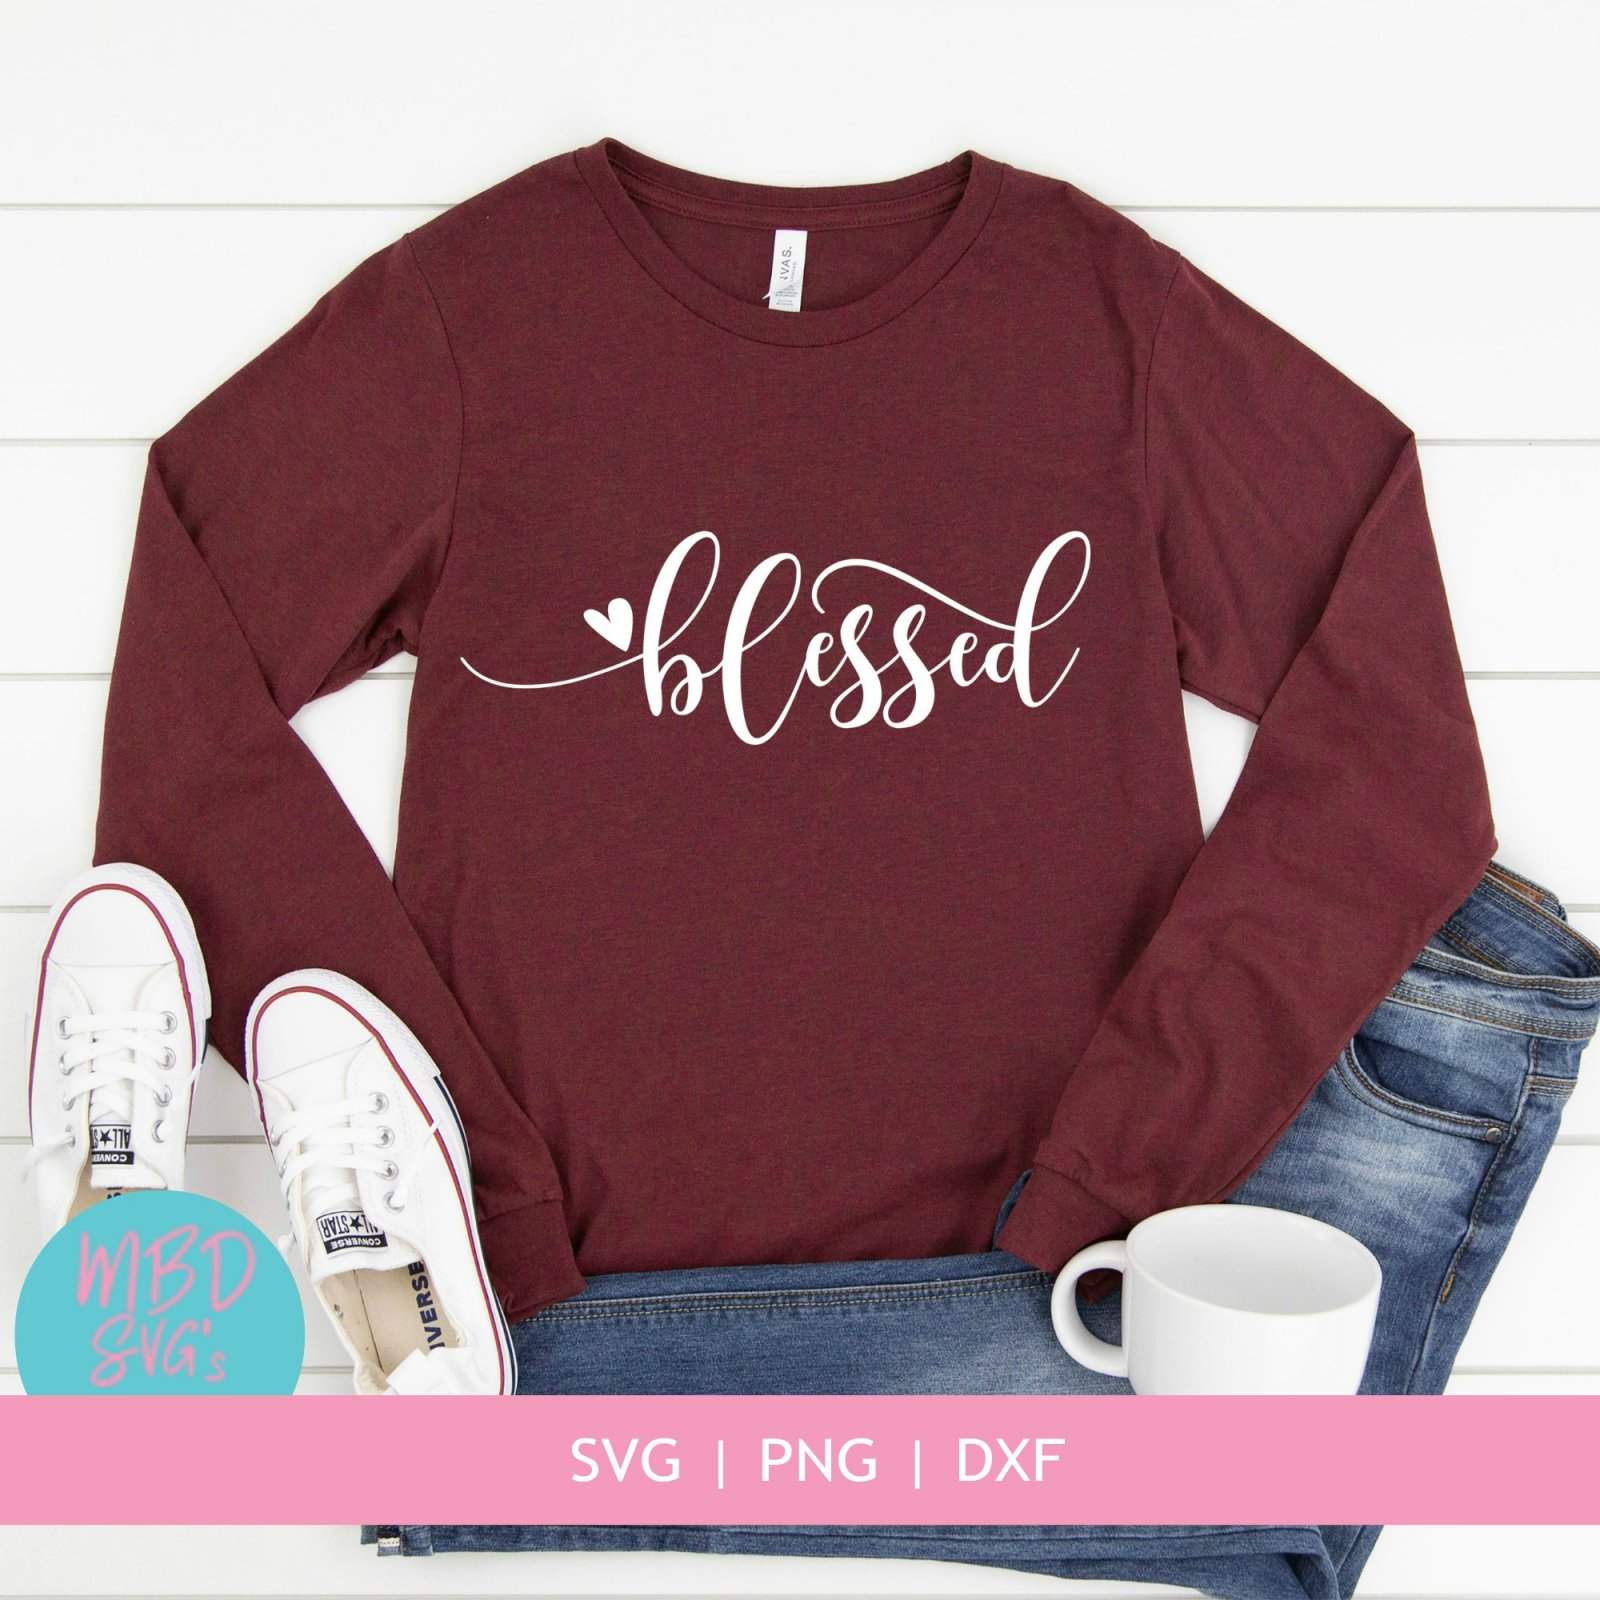 Blessed SVG Cut File for Silhouette or Cricut